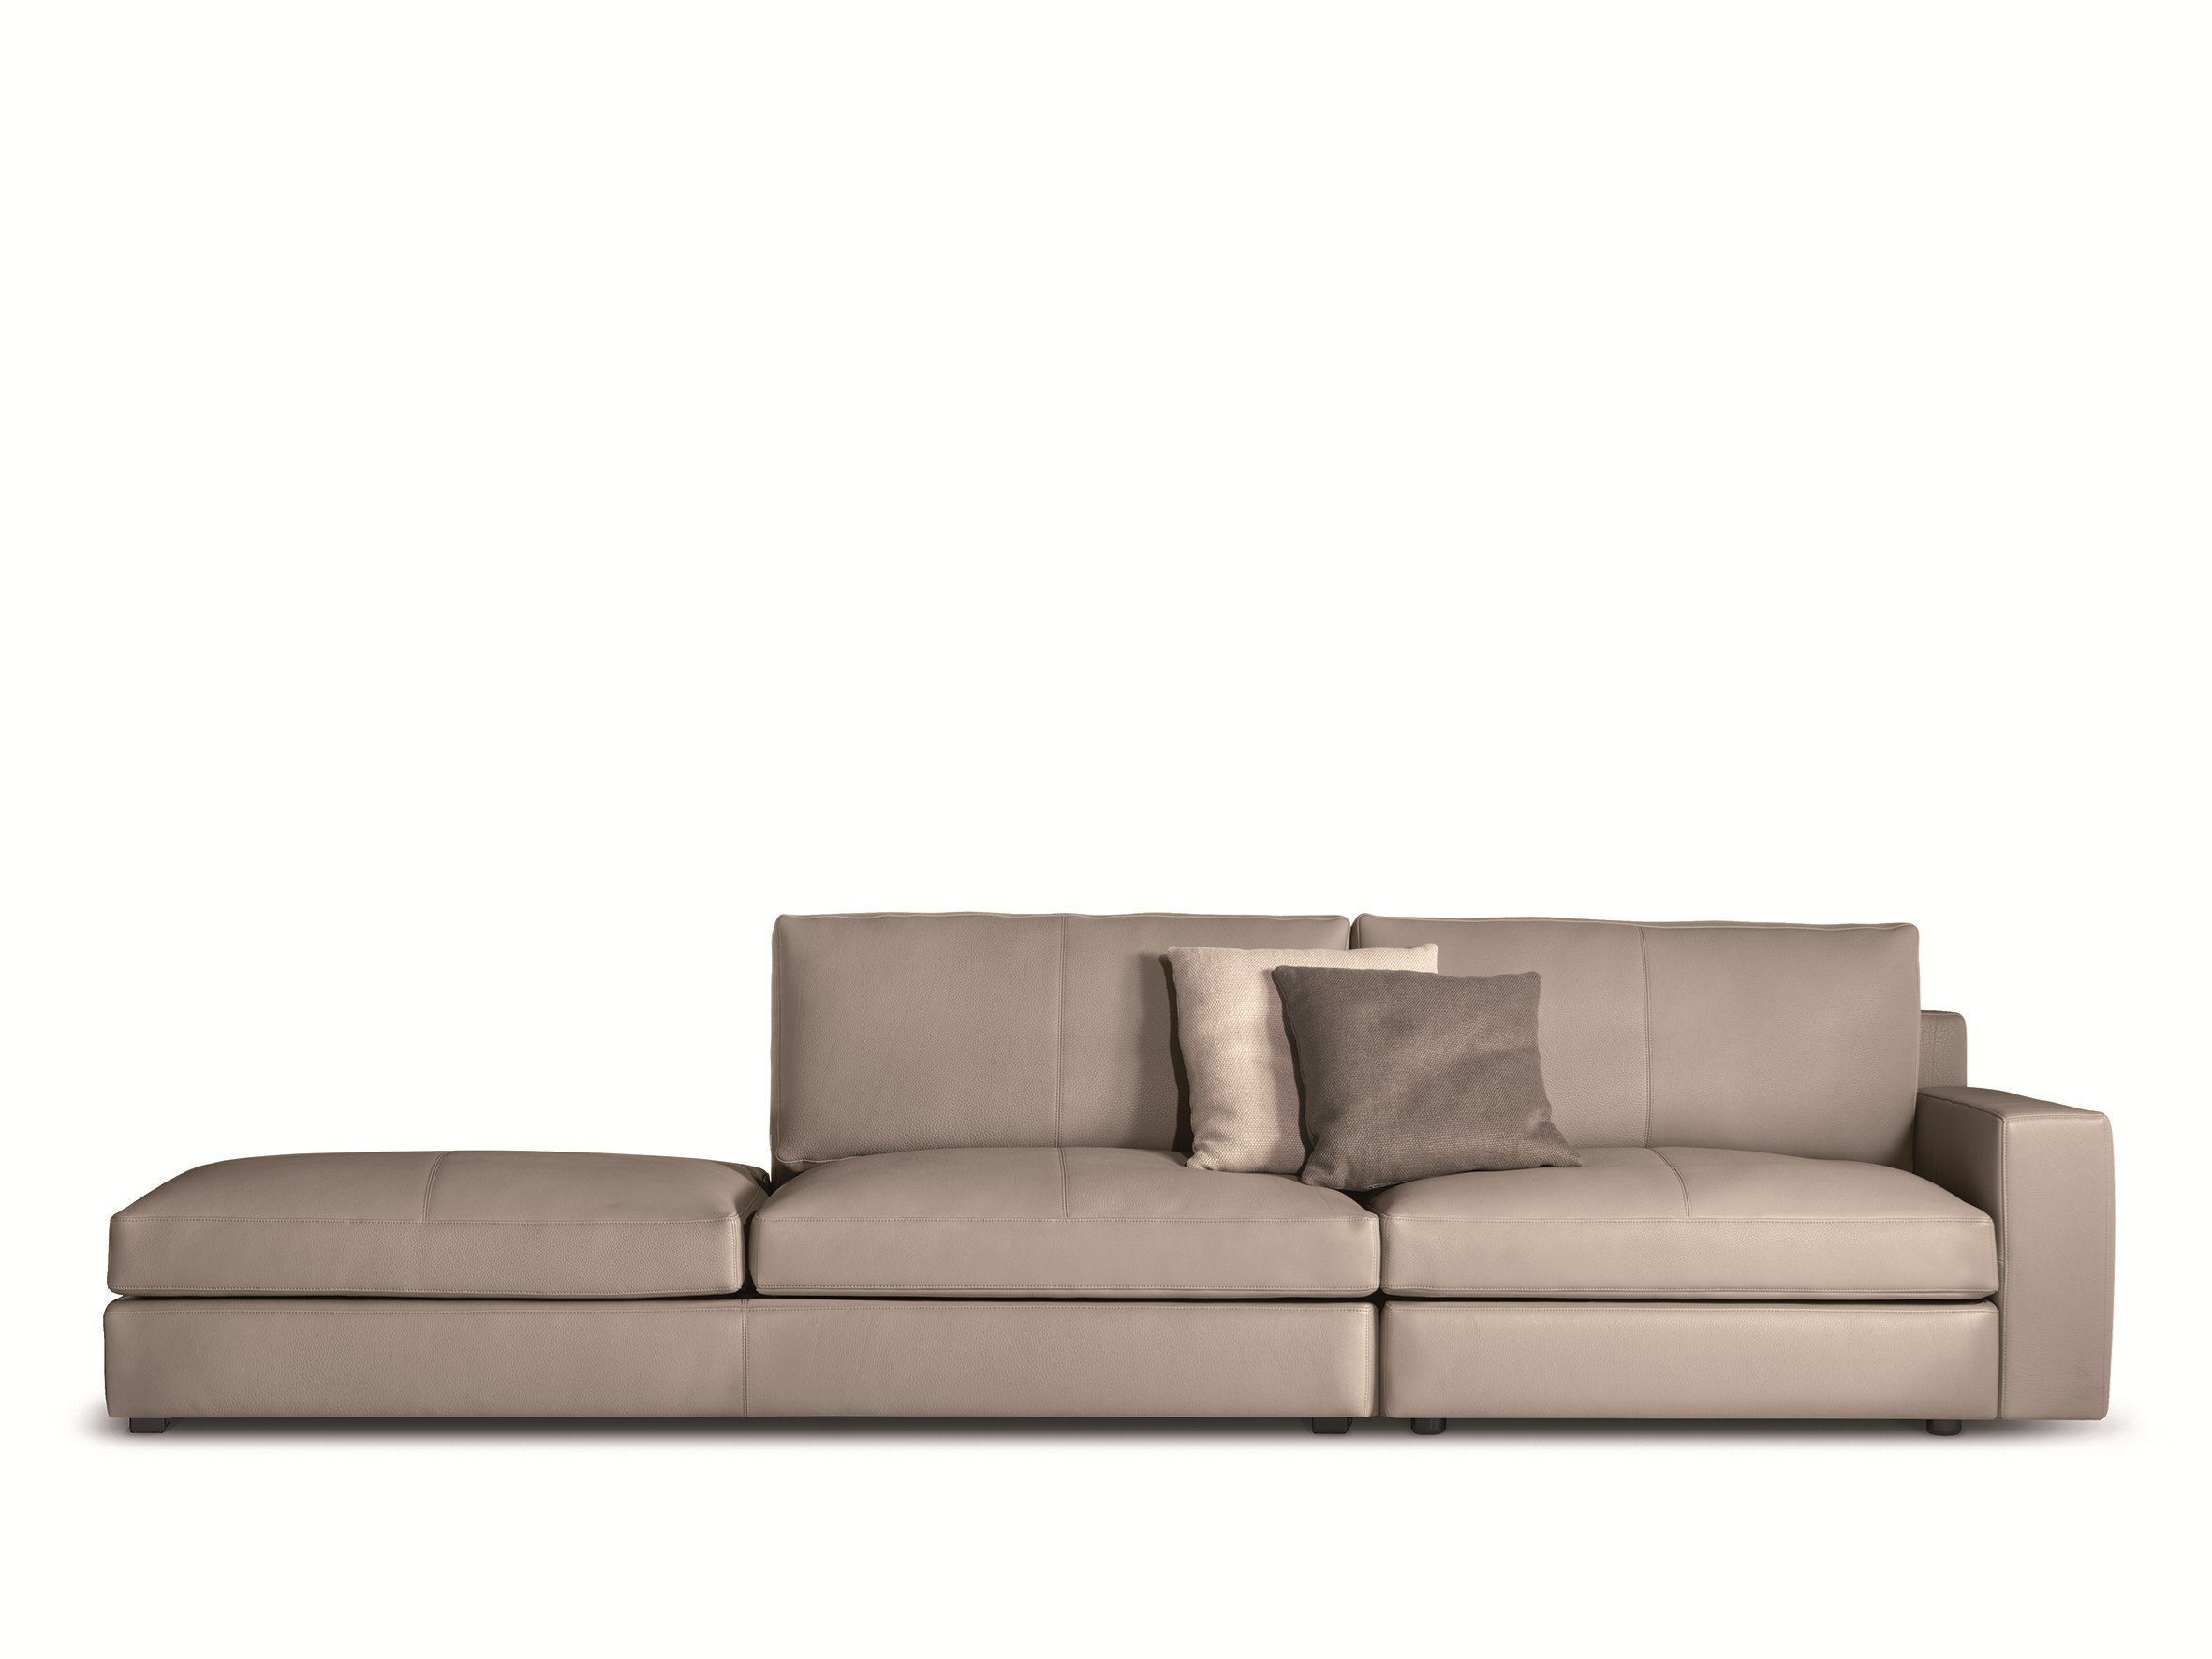 massimosistema sectional sofa by poltrona frau. Black Bedroom Furniture Sets. Home Design Ideas